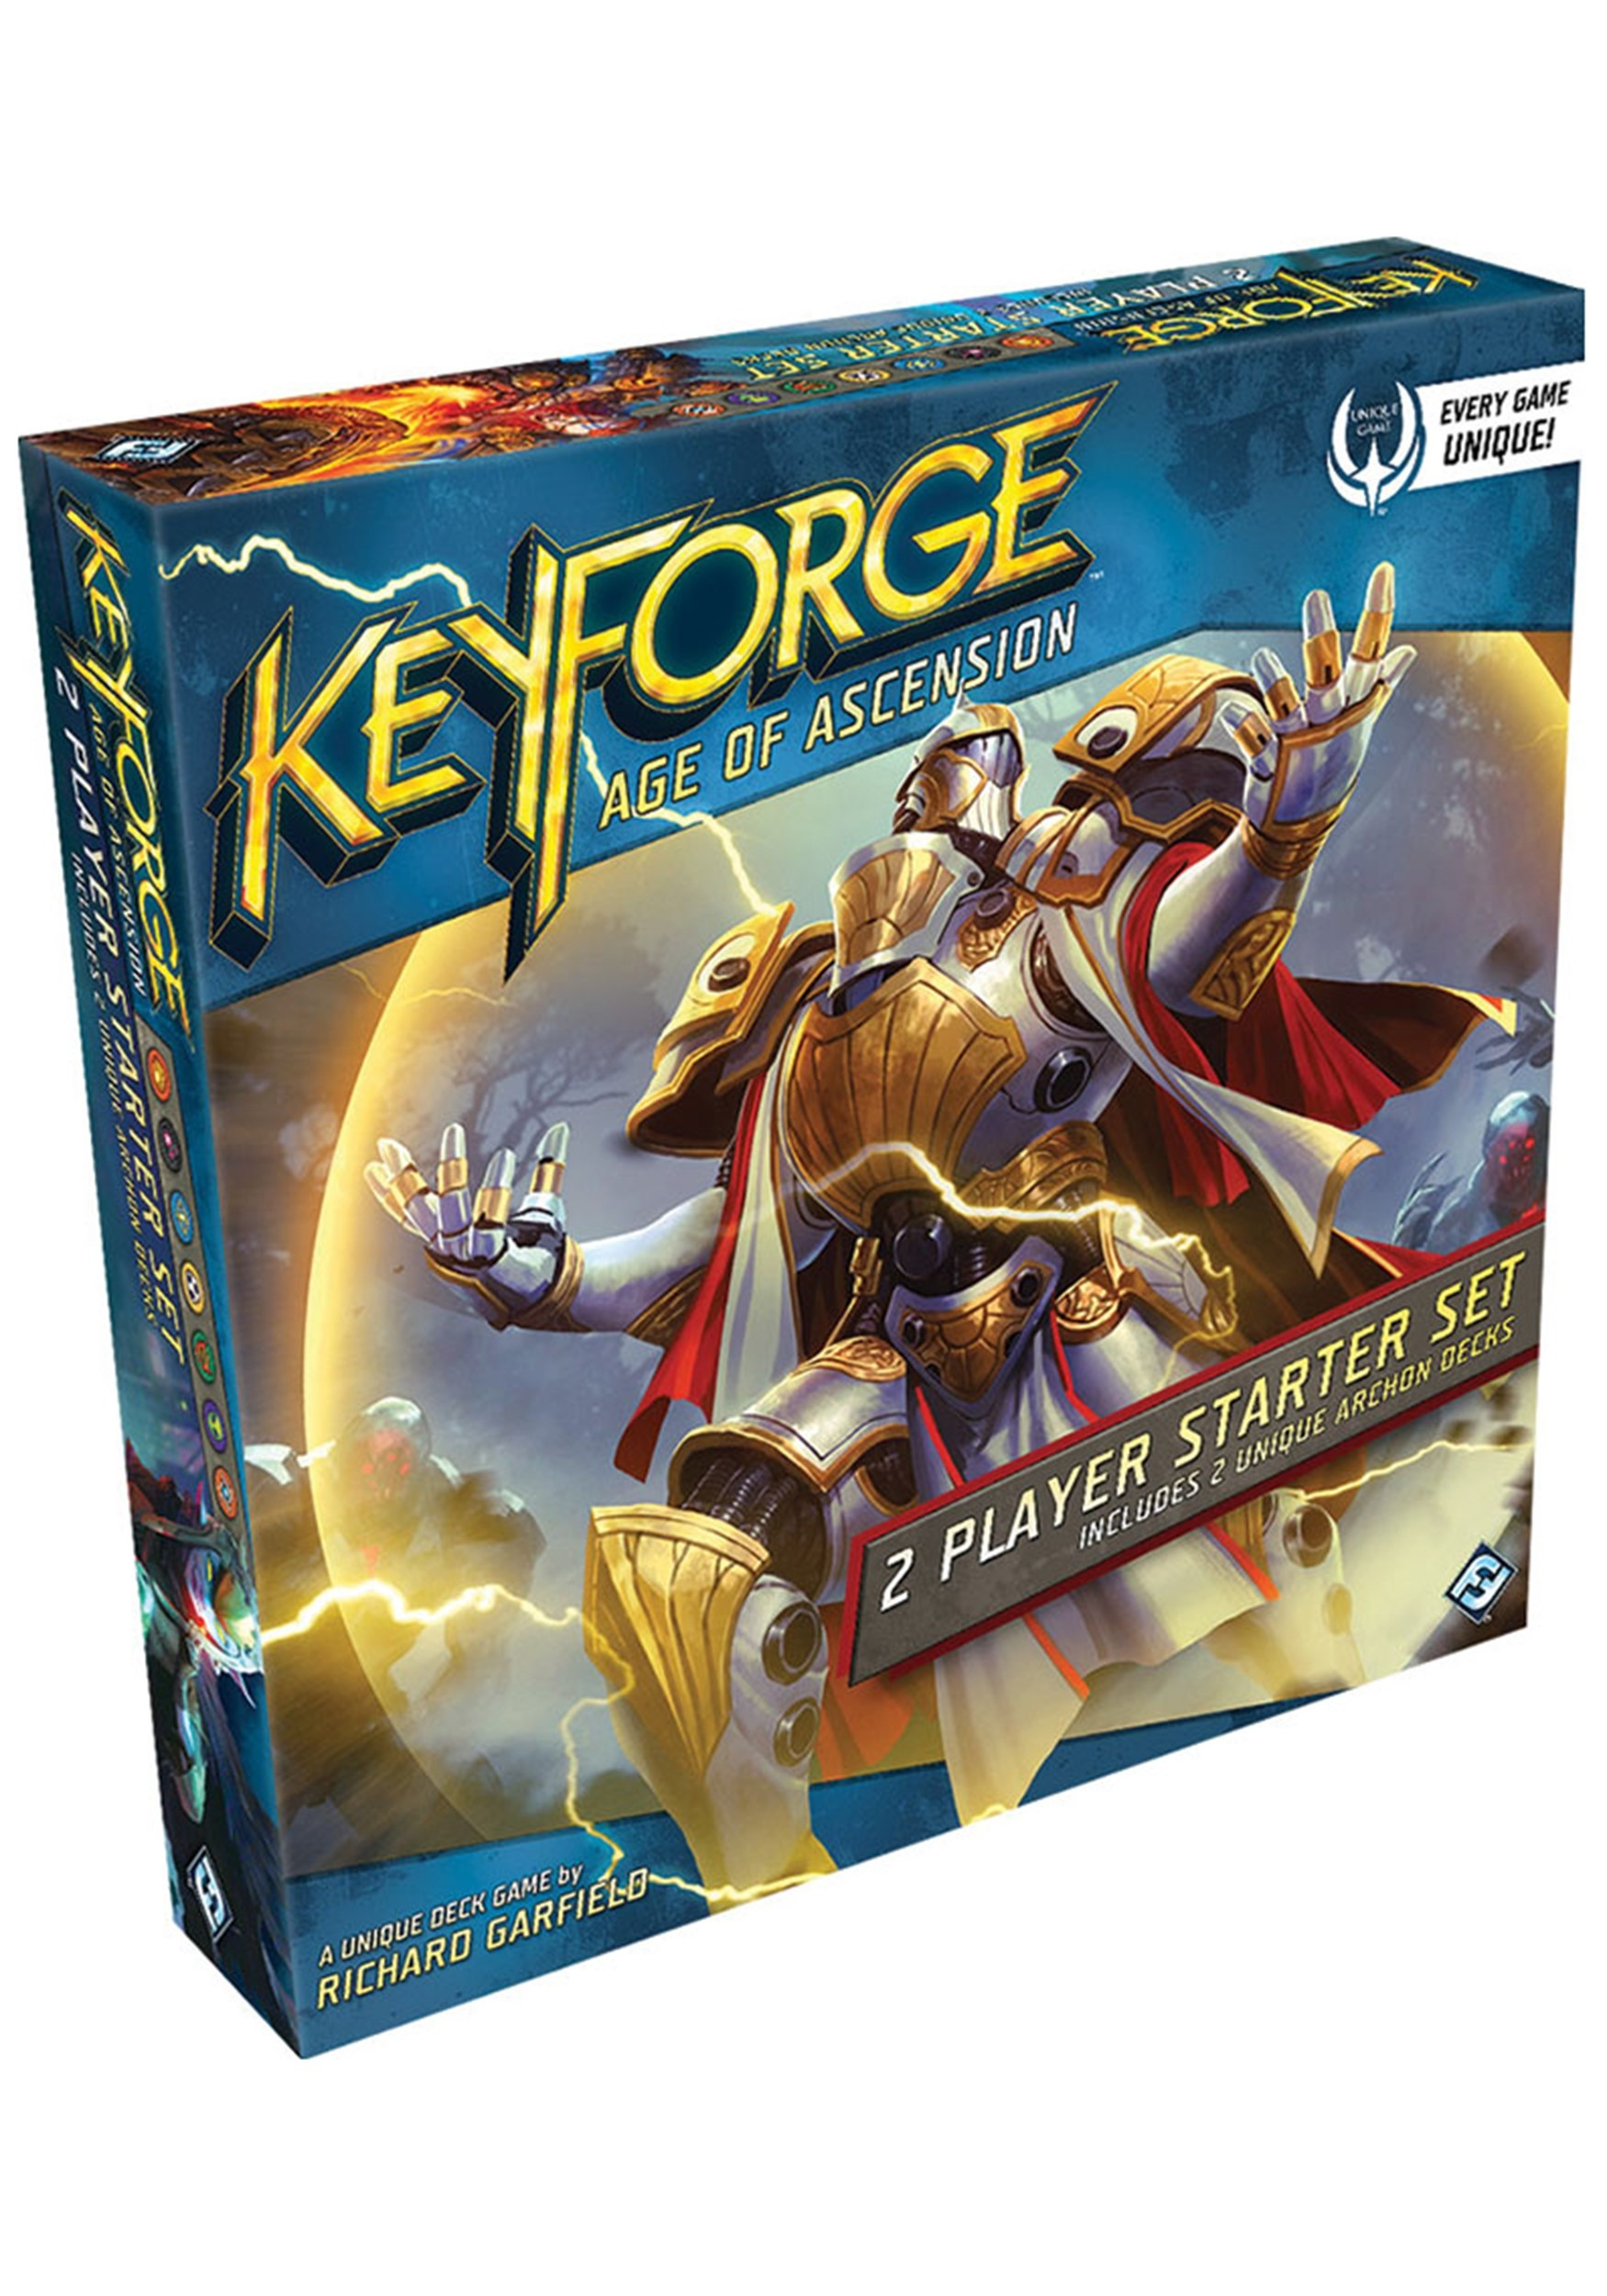 KeyForge: Age of Ascension Two-Player Starter Set Card Game